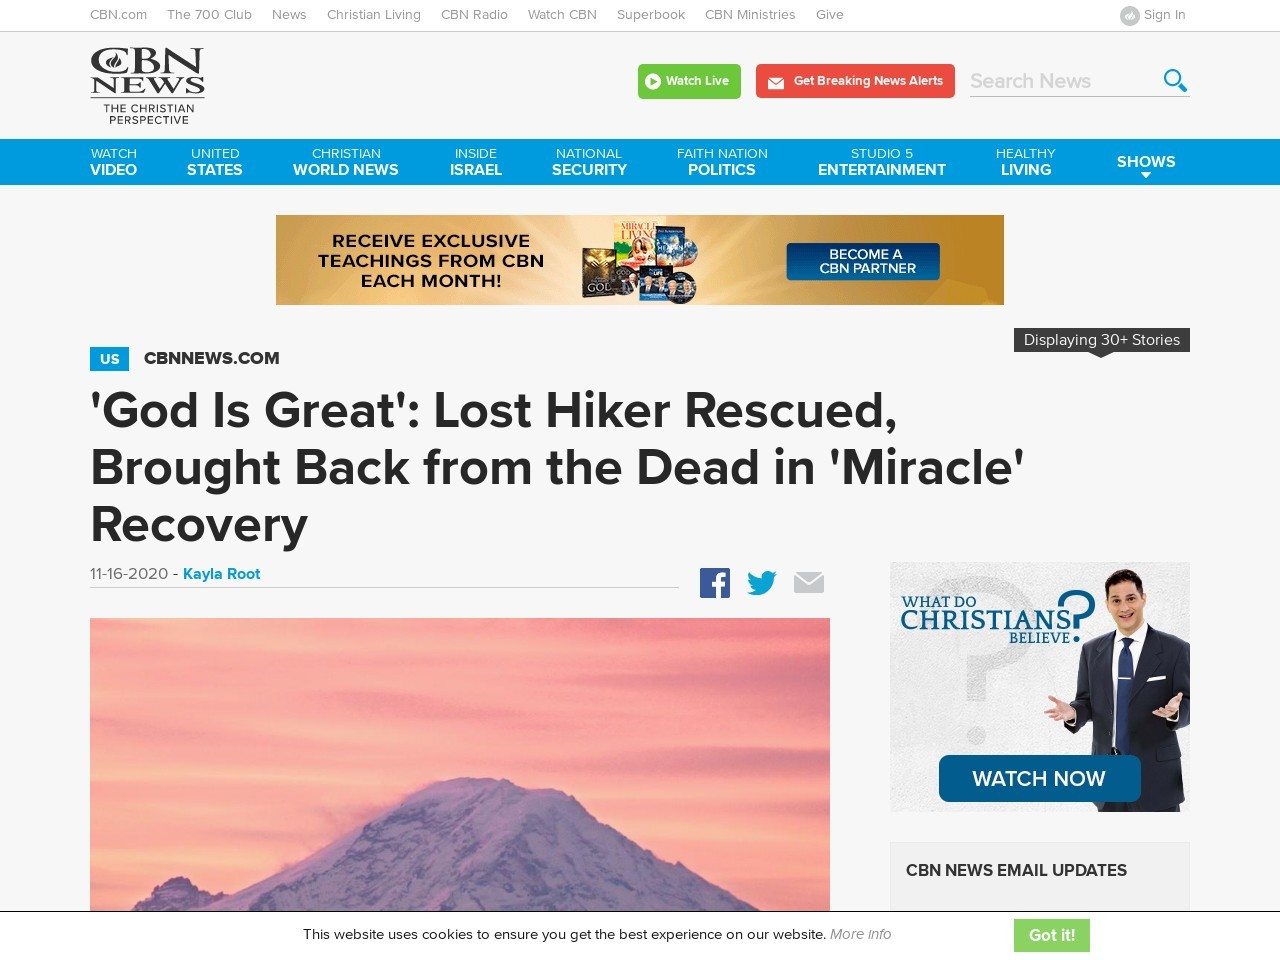 'God Is Great': Lost Hiker Rescued, Brought Back from the Dead in 'Miracle' Recovery